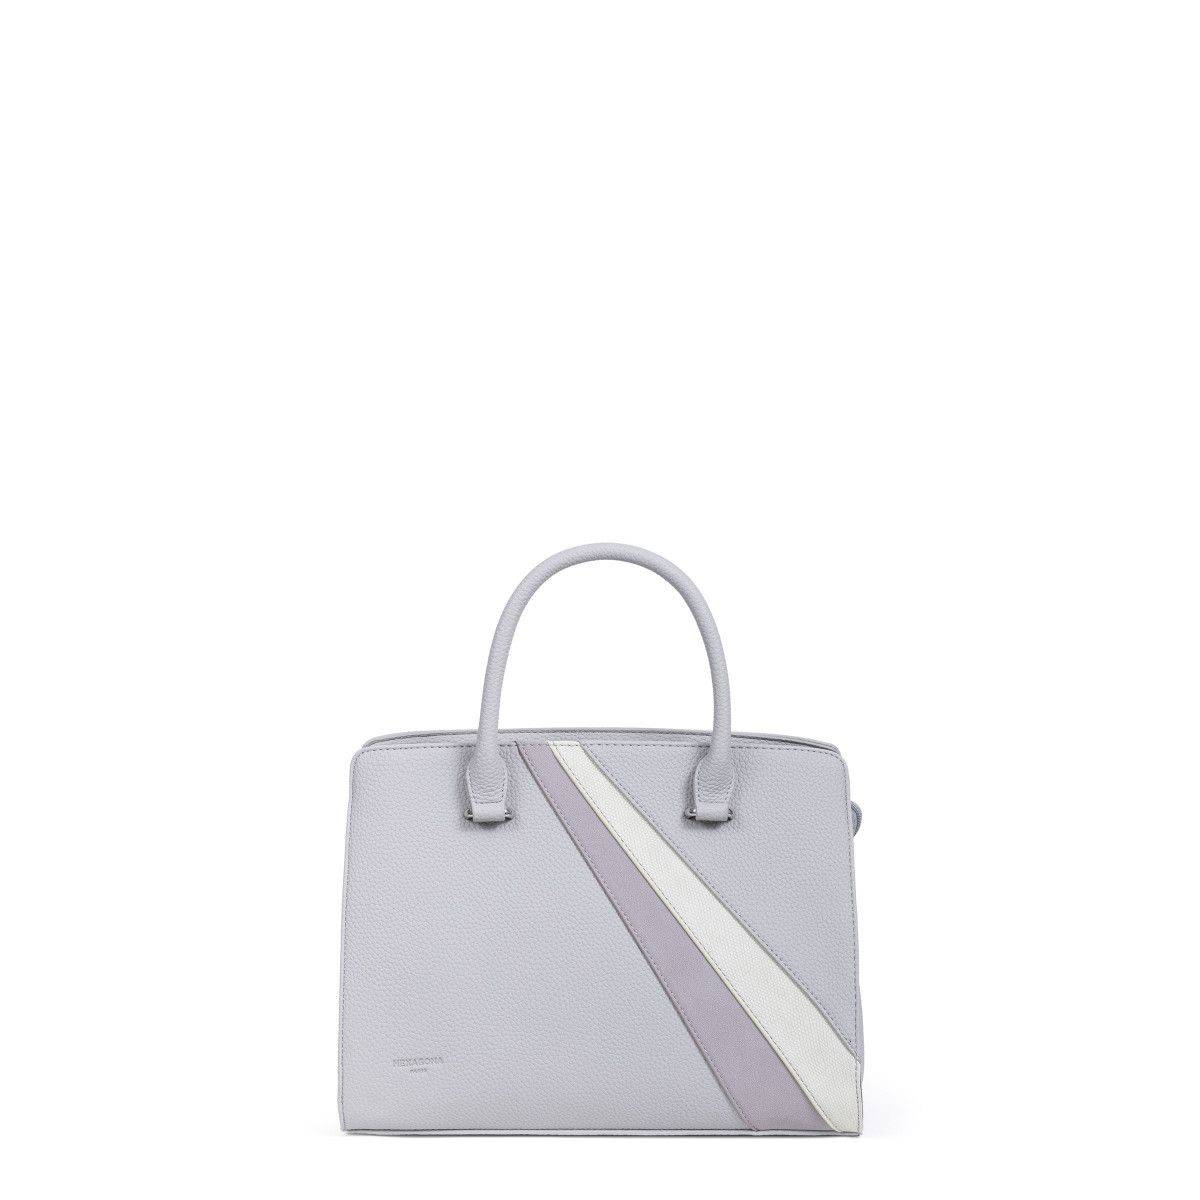 Hexagona En Cuir Chic Femme Main Rainbow255831 Simili À Sac kulPTwOXiZ